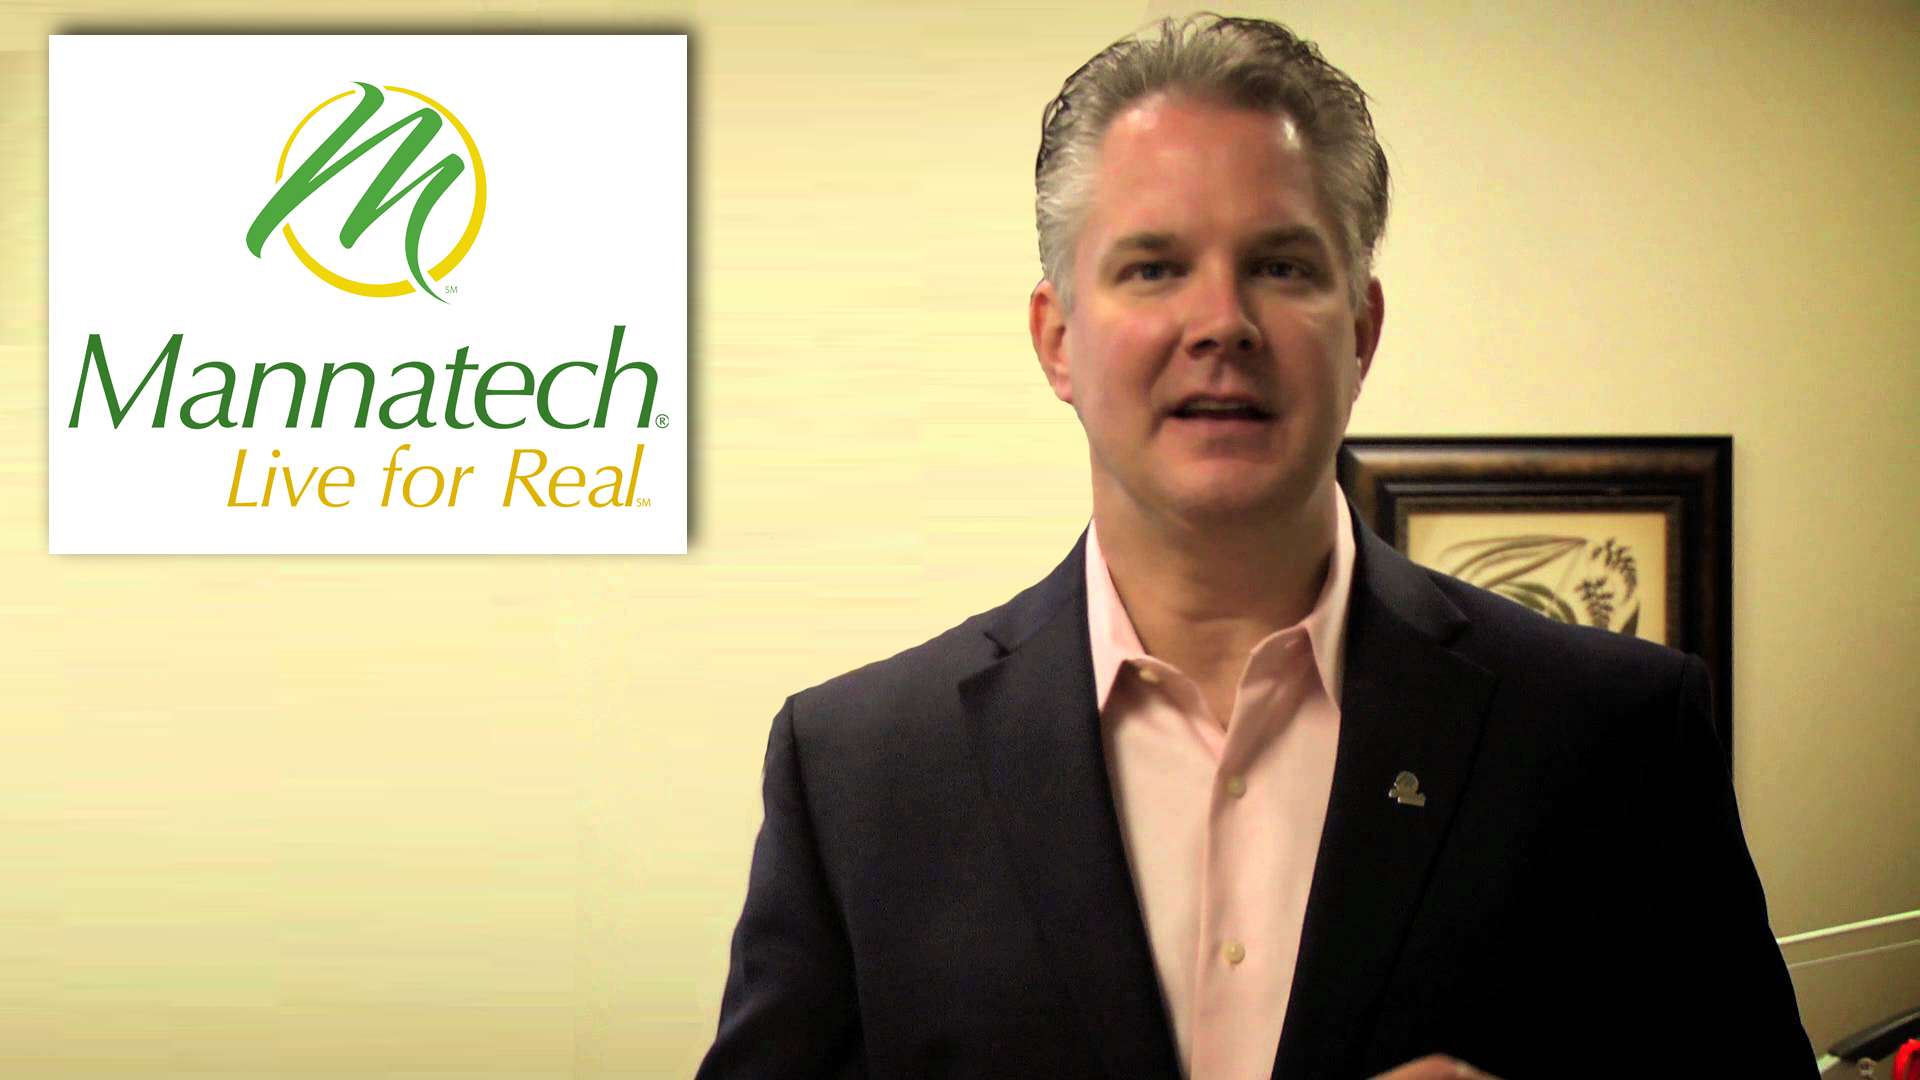 robert-sinnott-ceo-mannatech